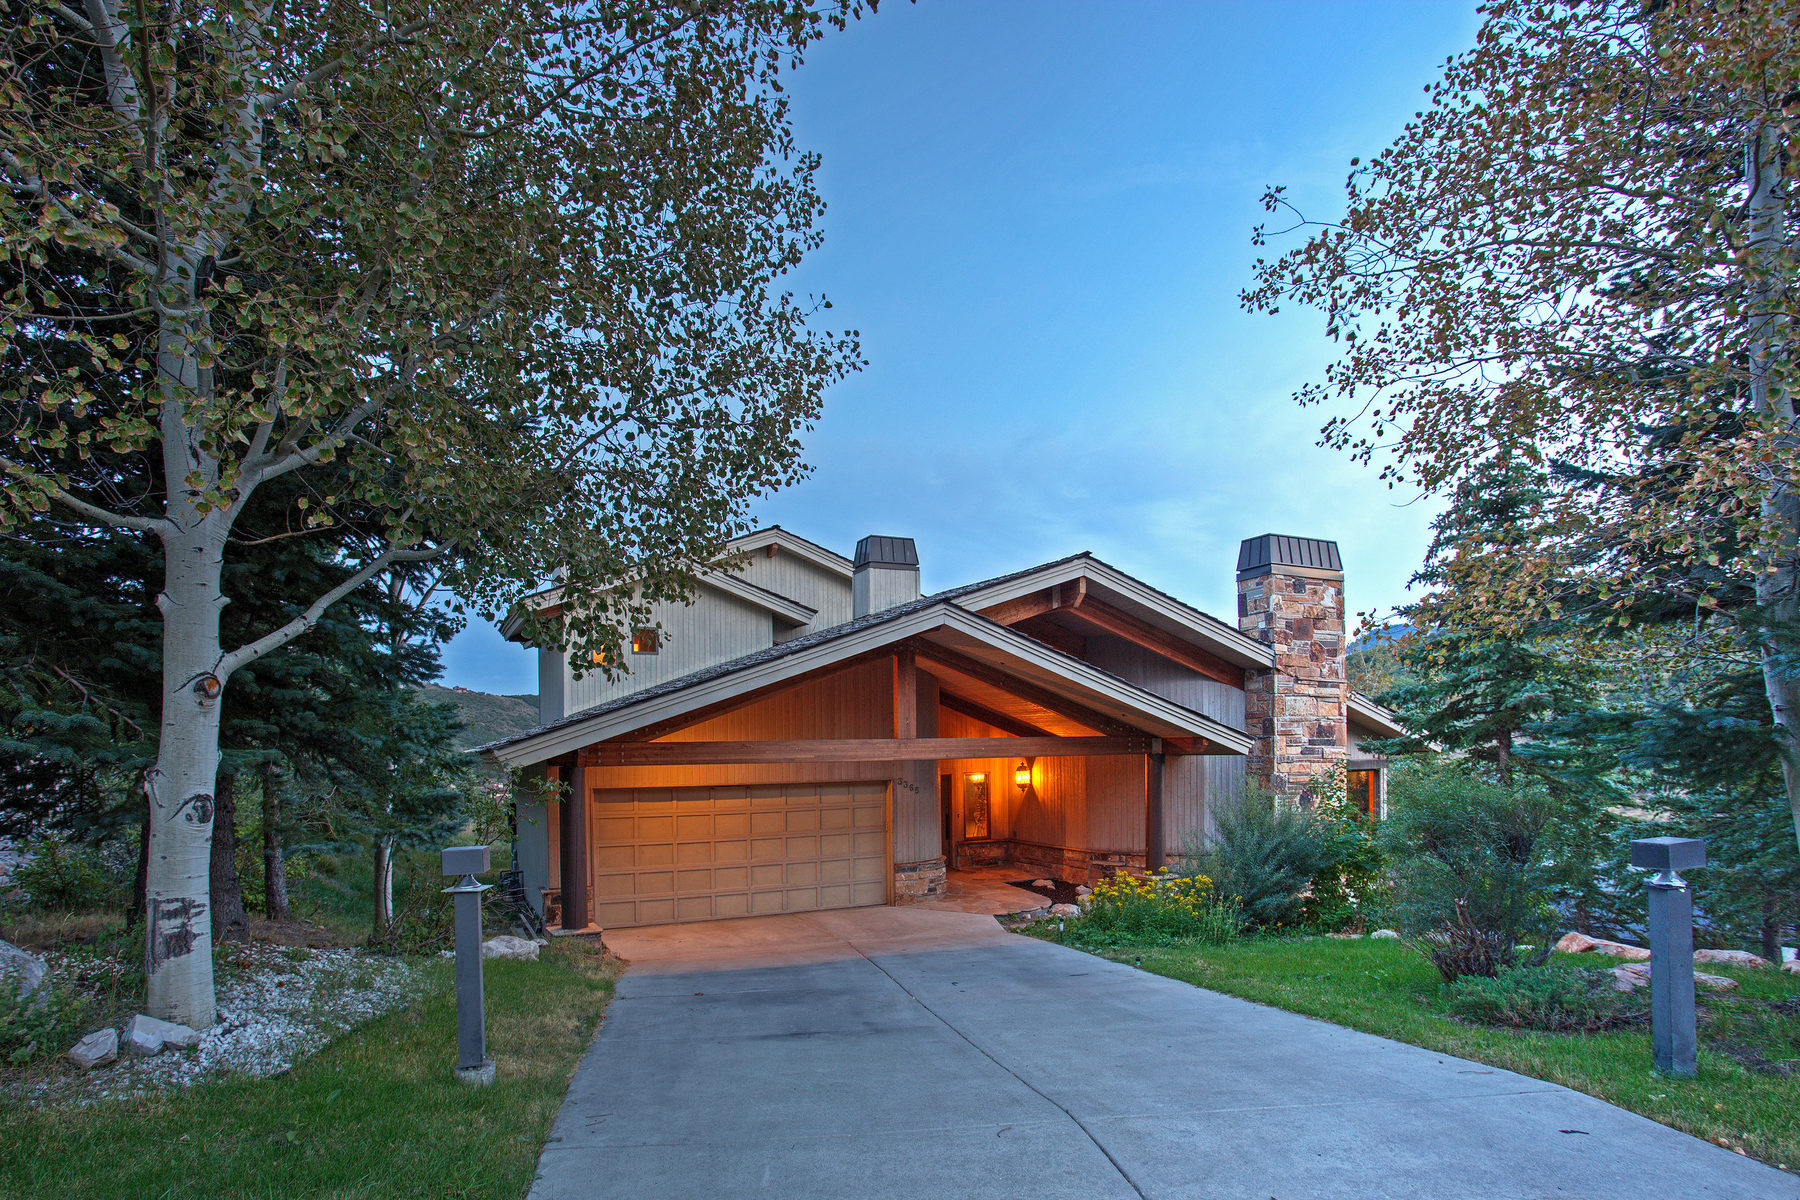 Single Family Home for Sale at Lower Deer Valley 3365 Oak Leaf Ct Park City, Utah, 84060 United States